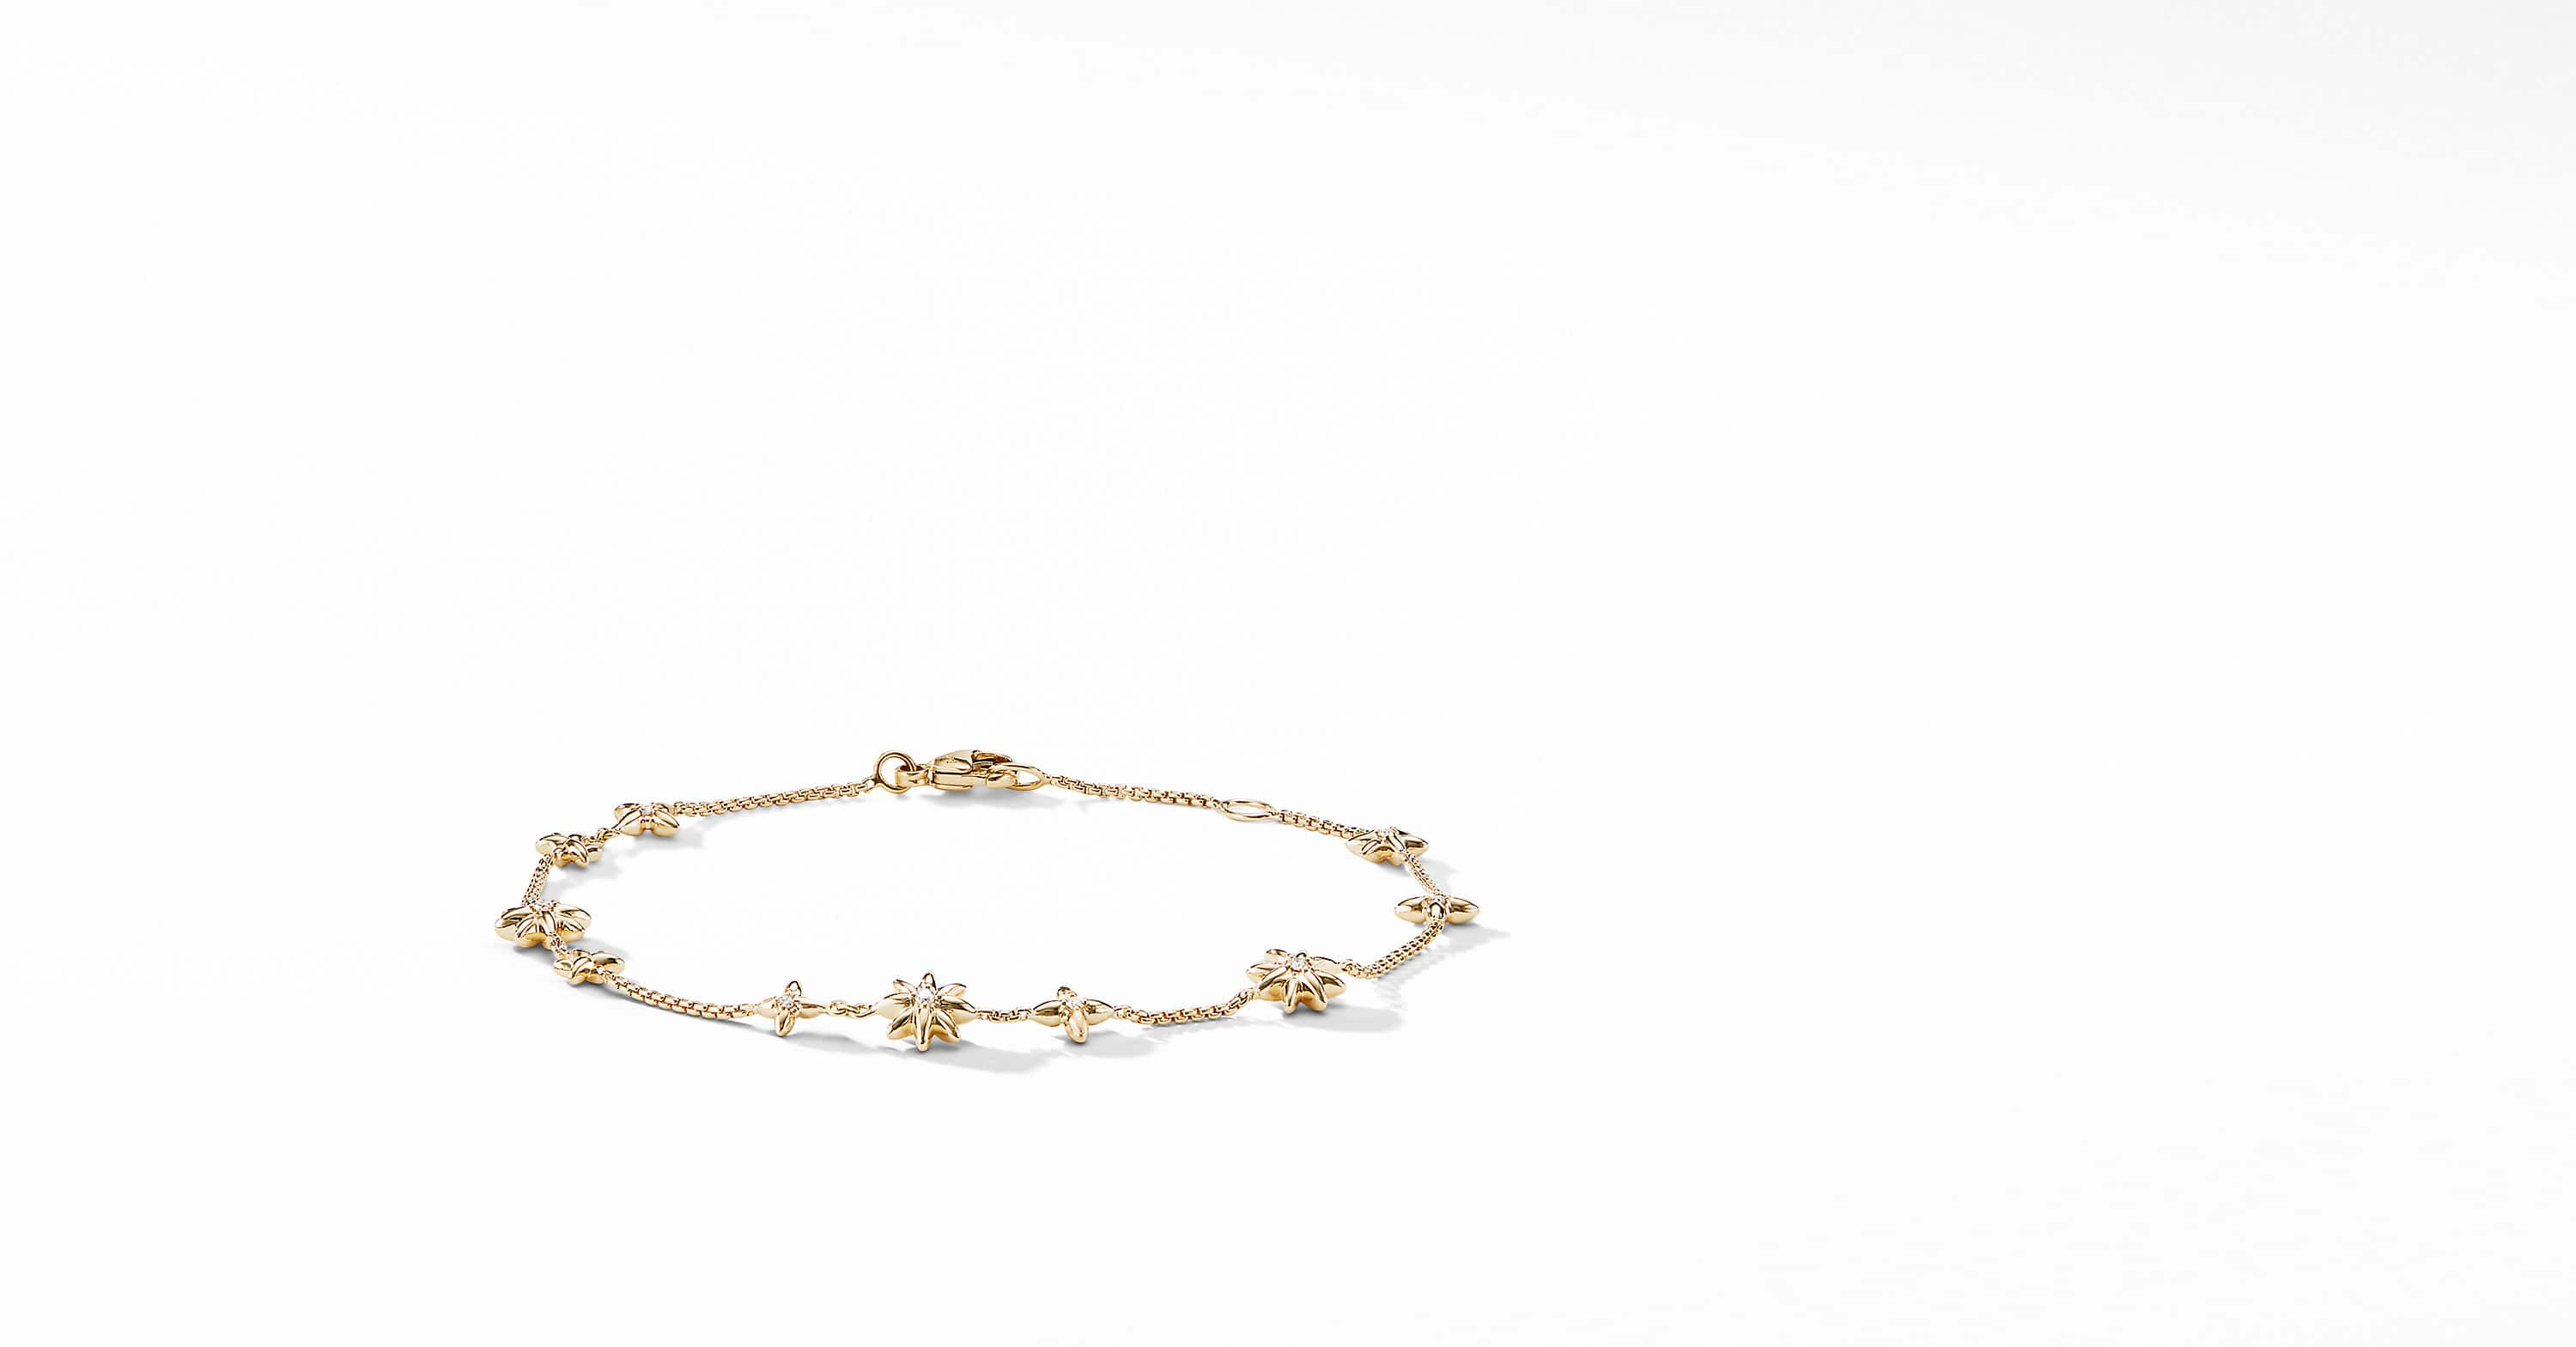 Starburst Constellation Bracelet in 18K Gold with Diamonds